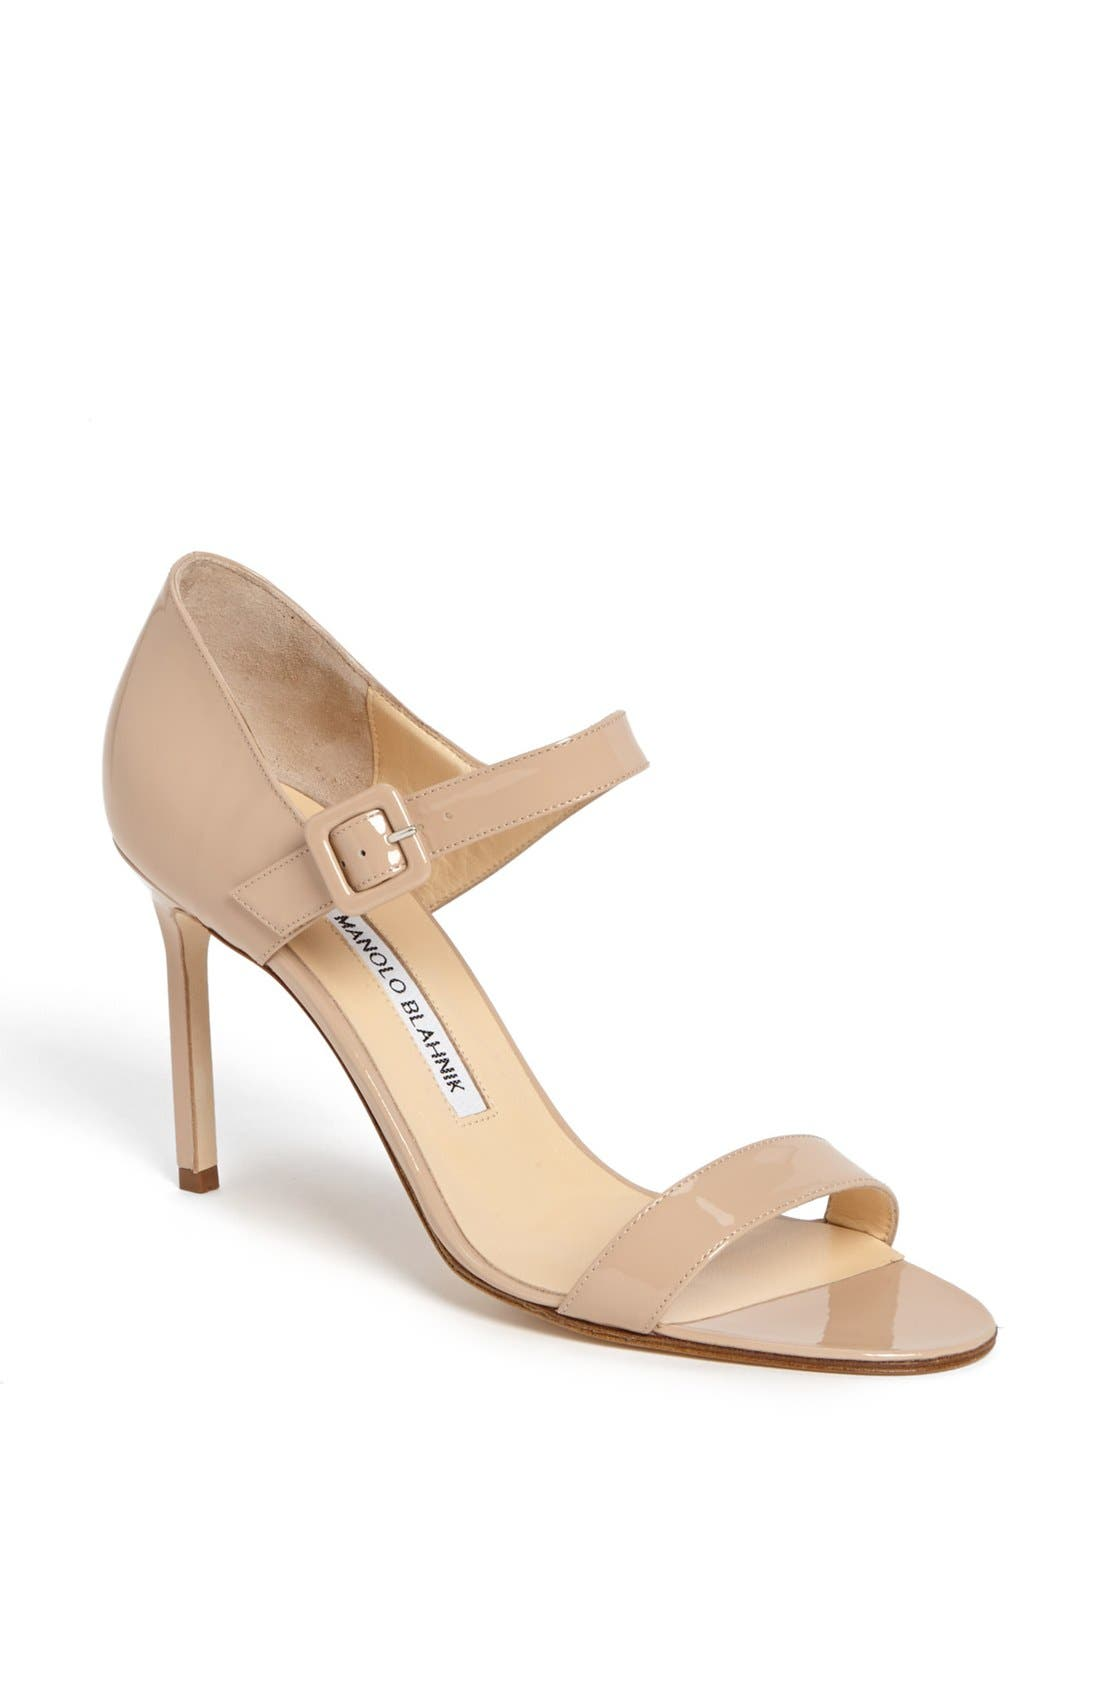 Main Image - Manolo Blahnik 'Nellang' Patent Leather Sandal